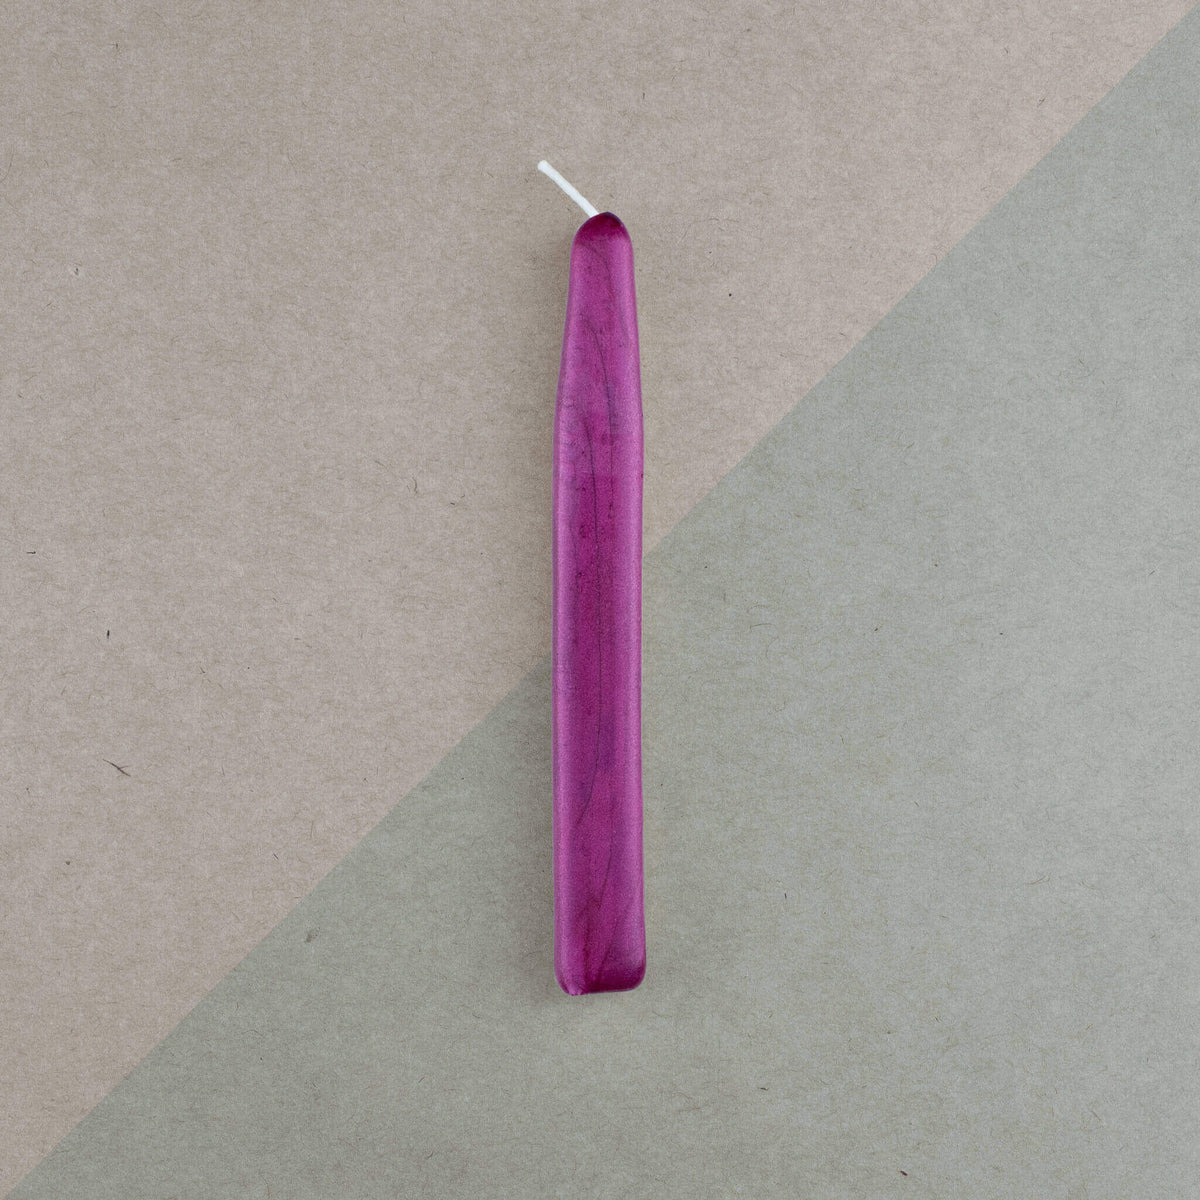 Kustom Haus Traditional Sealing Wax Stick with Wick - Fuchsia Pearl